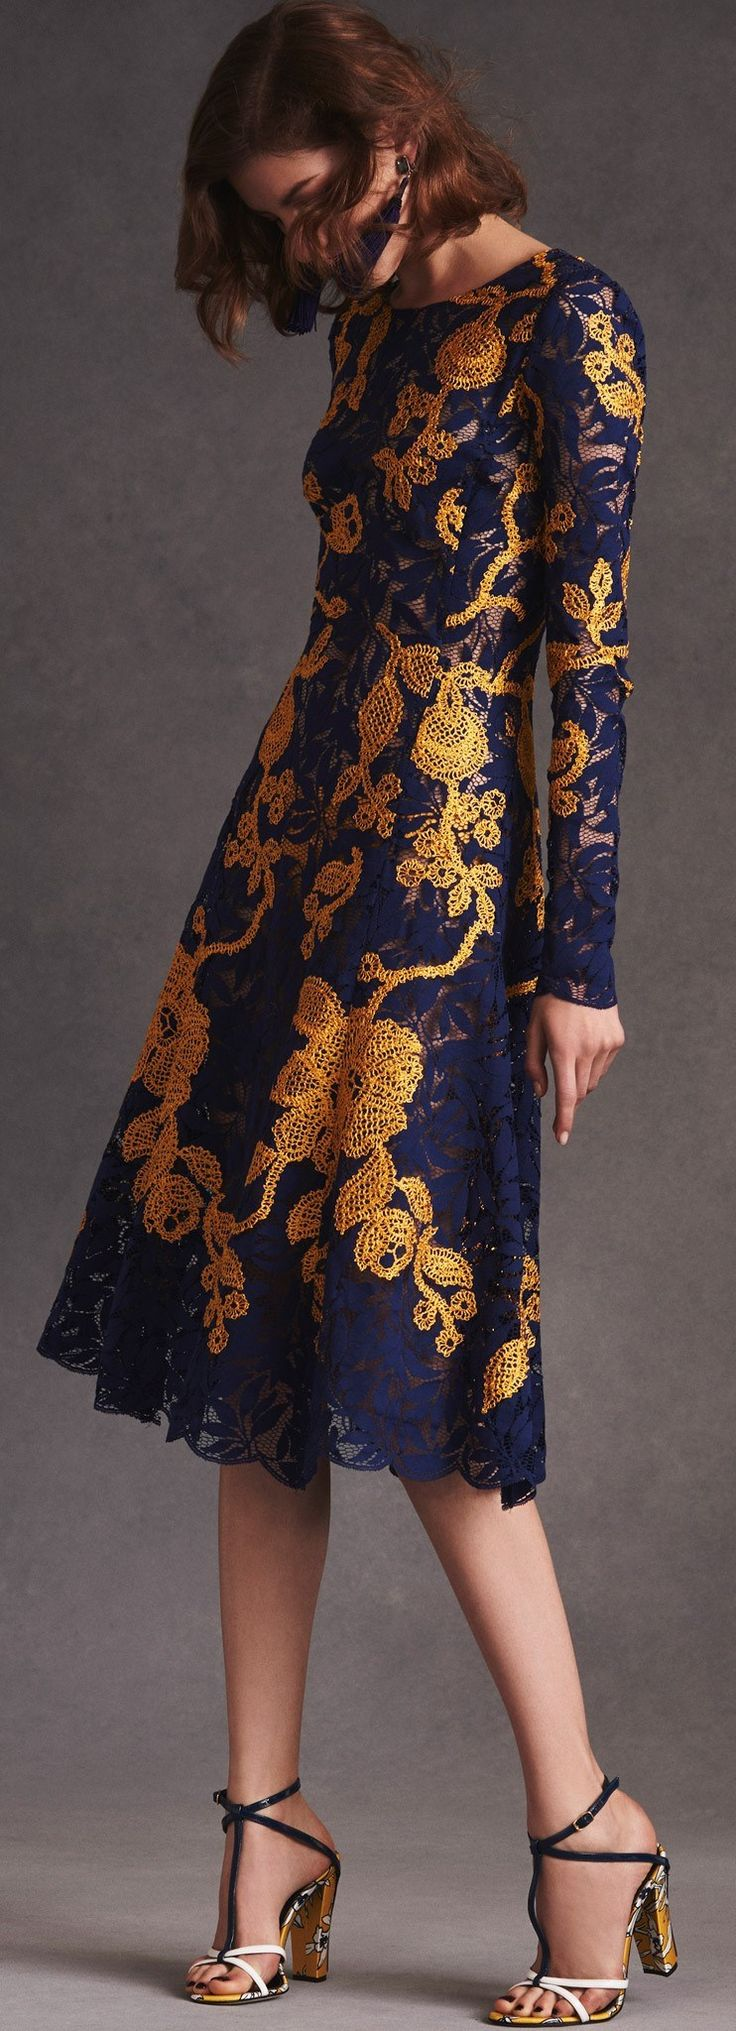 I want this, Oscar de la Renta Resort 2016 dress. The pattern is very Renaissance-inspired, with 21st century updating.